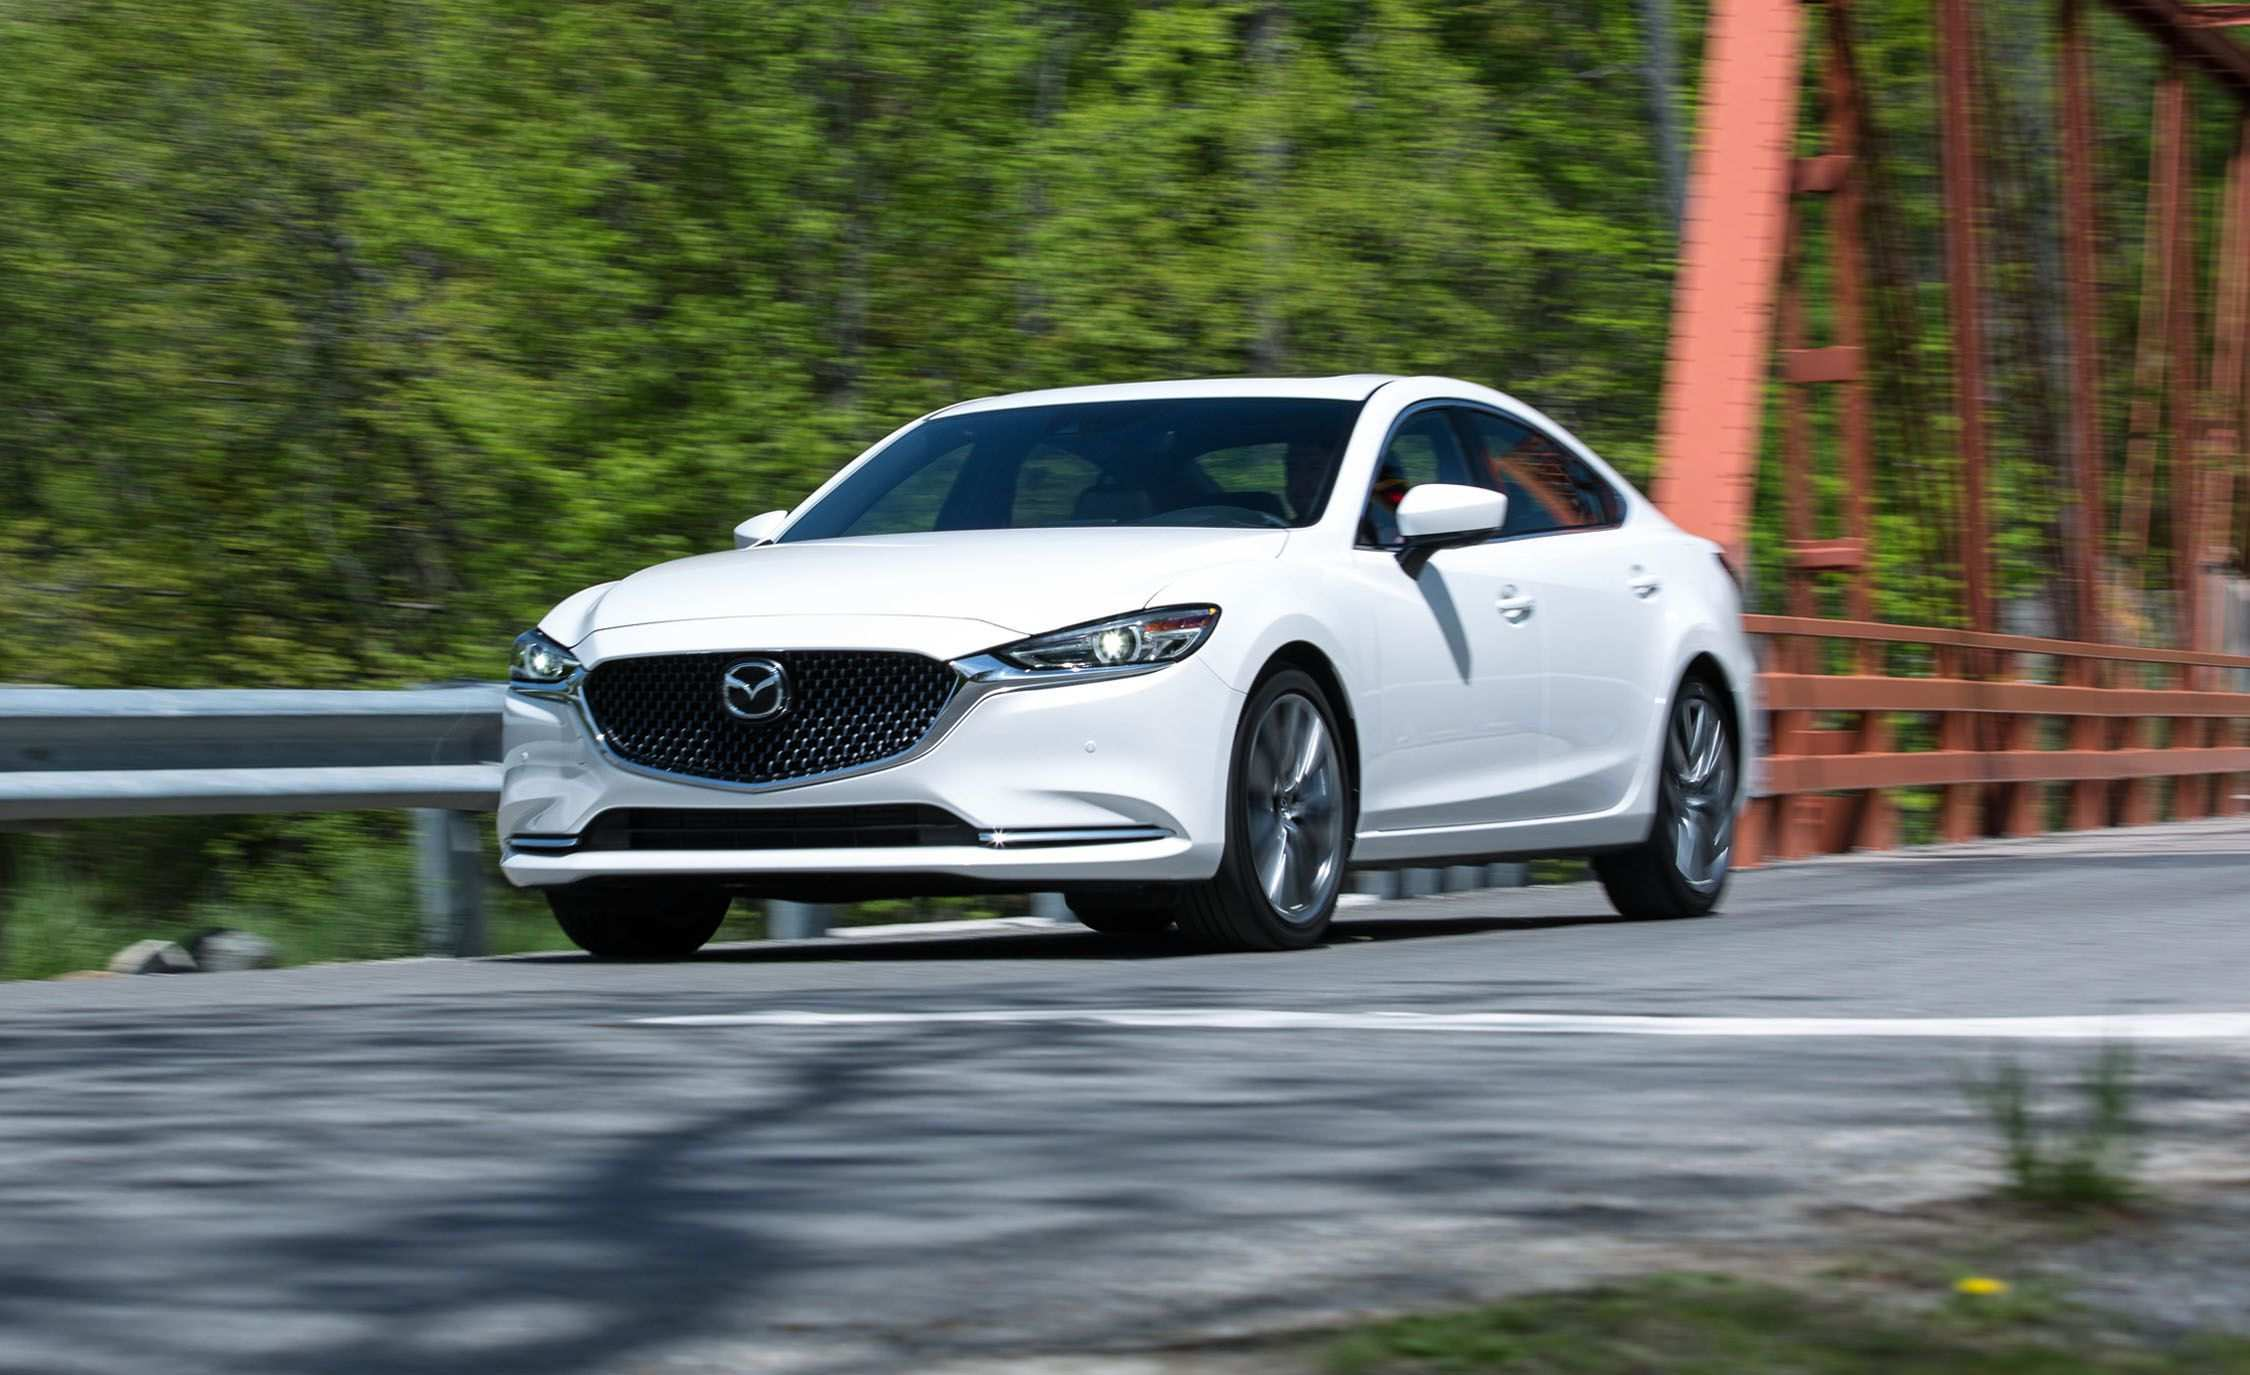 32 Gallery of 2020 Mazda 6 Wagon Canada Speed Test by 2020 Mazda 6 Wagon Canada